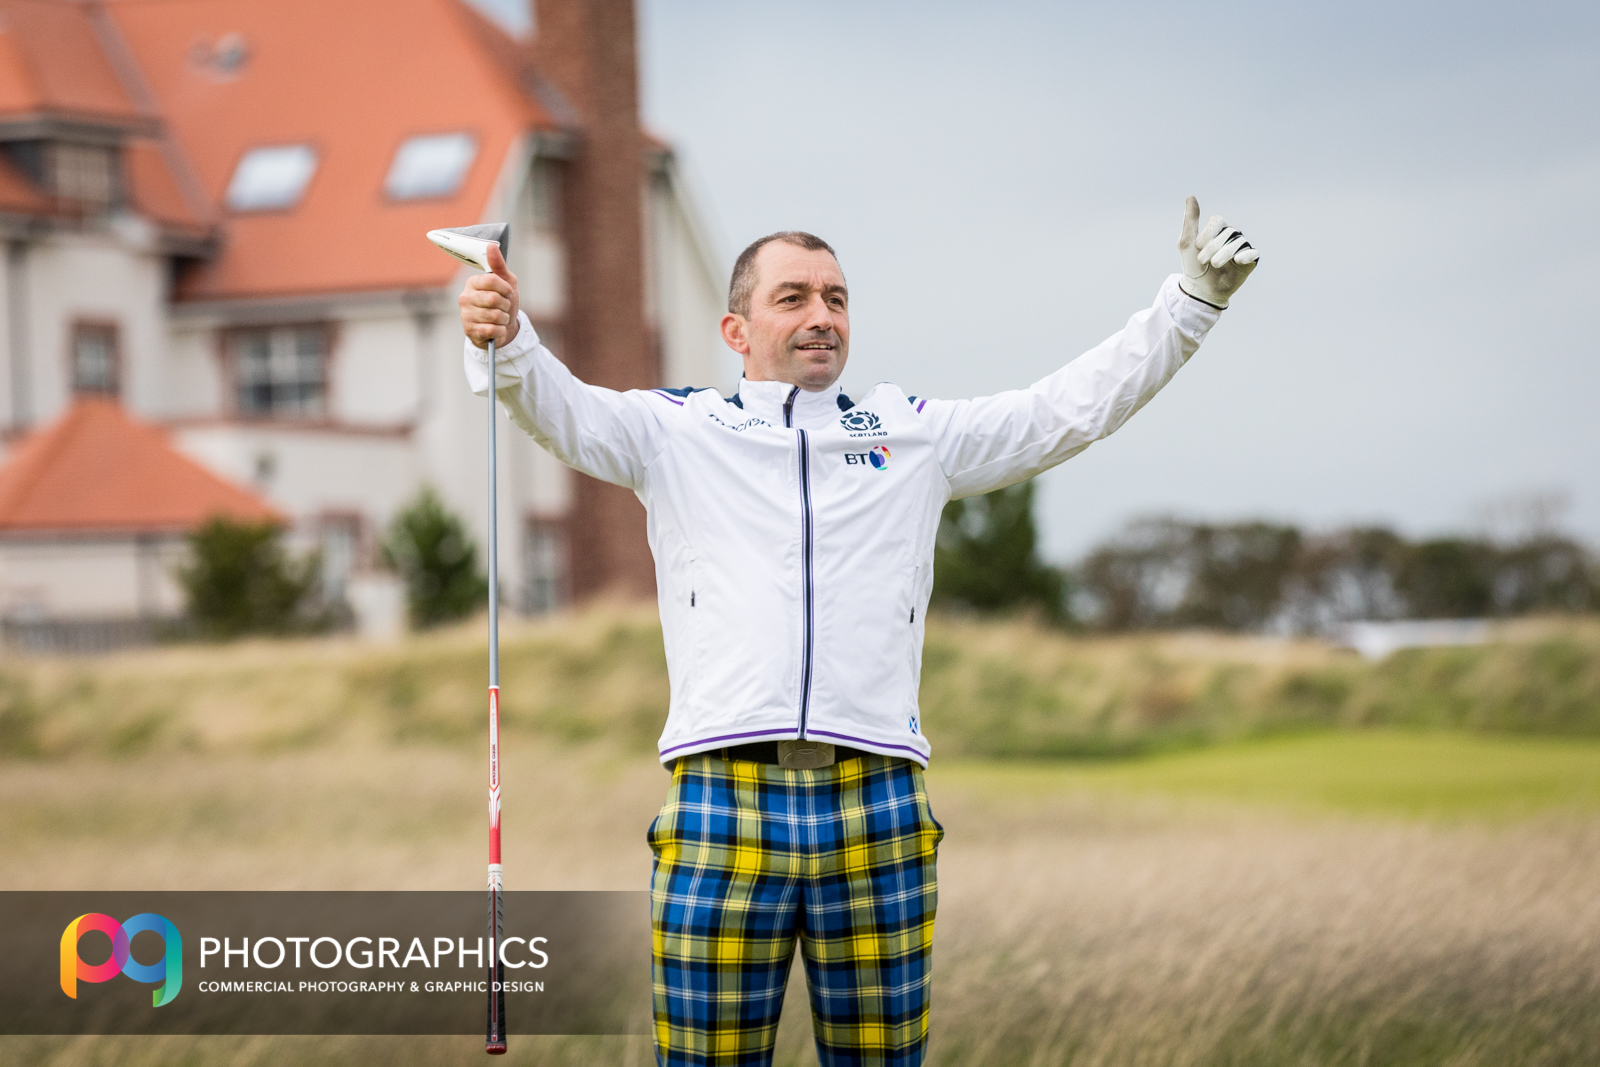 charity-golf-pr-event-photography-glasgow-edinburgh-scotland-24.jpg